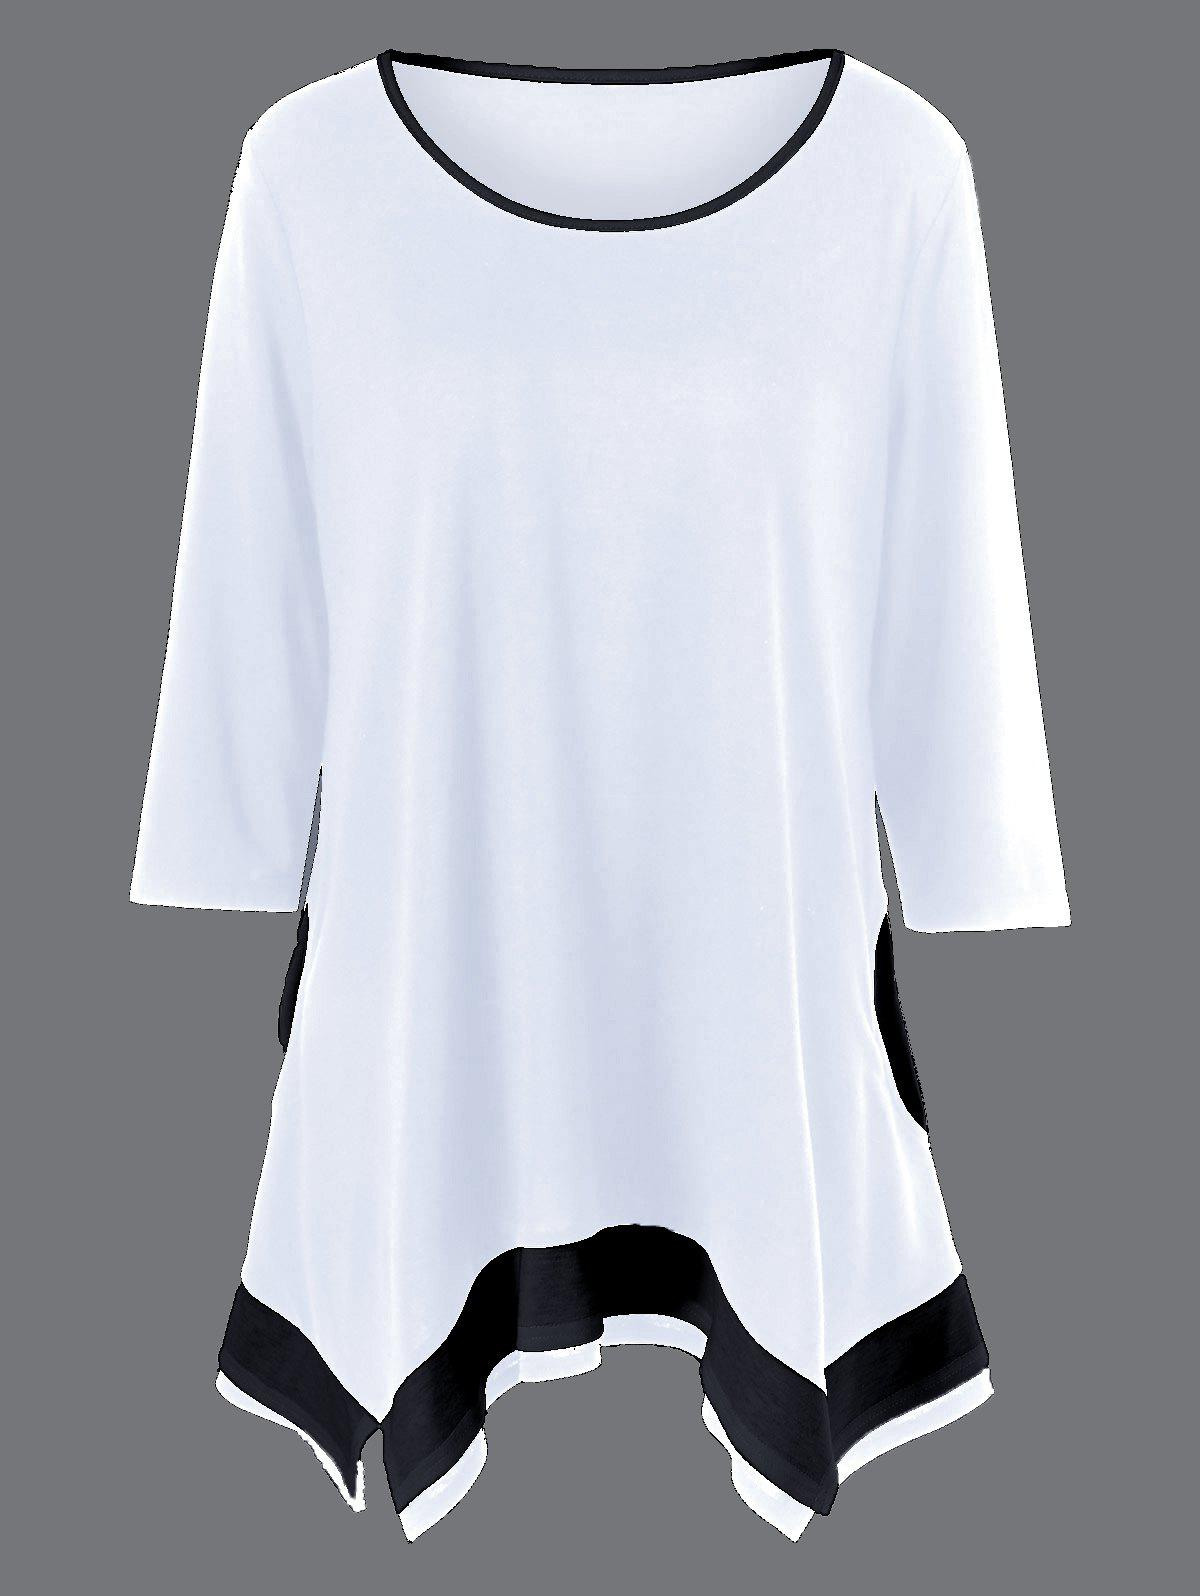 2018 Plus Size Pockets Design Two Tone T Shirt White Xl In T Shirts